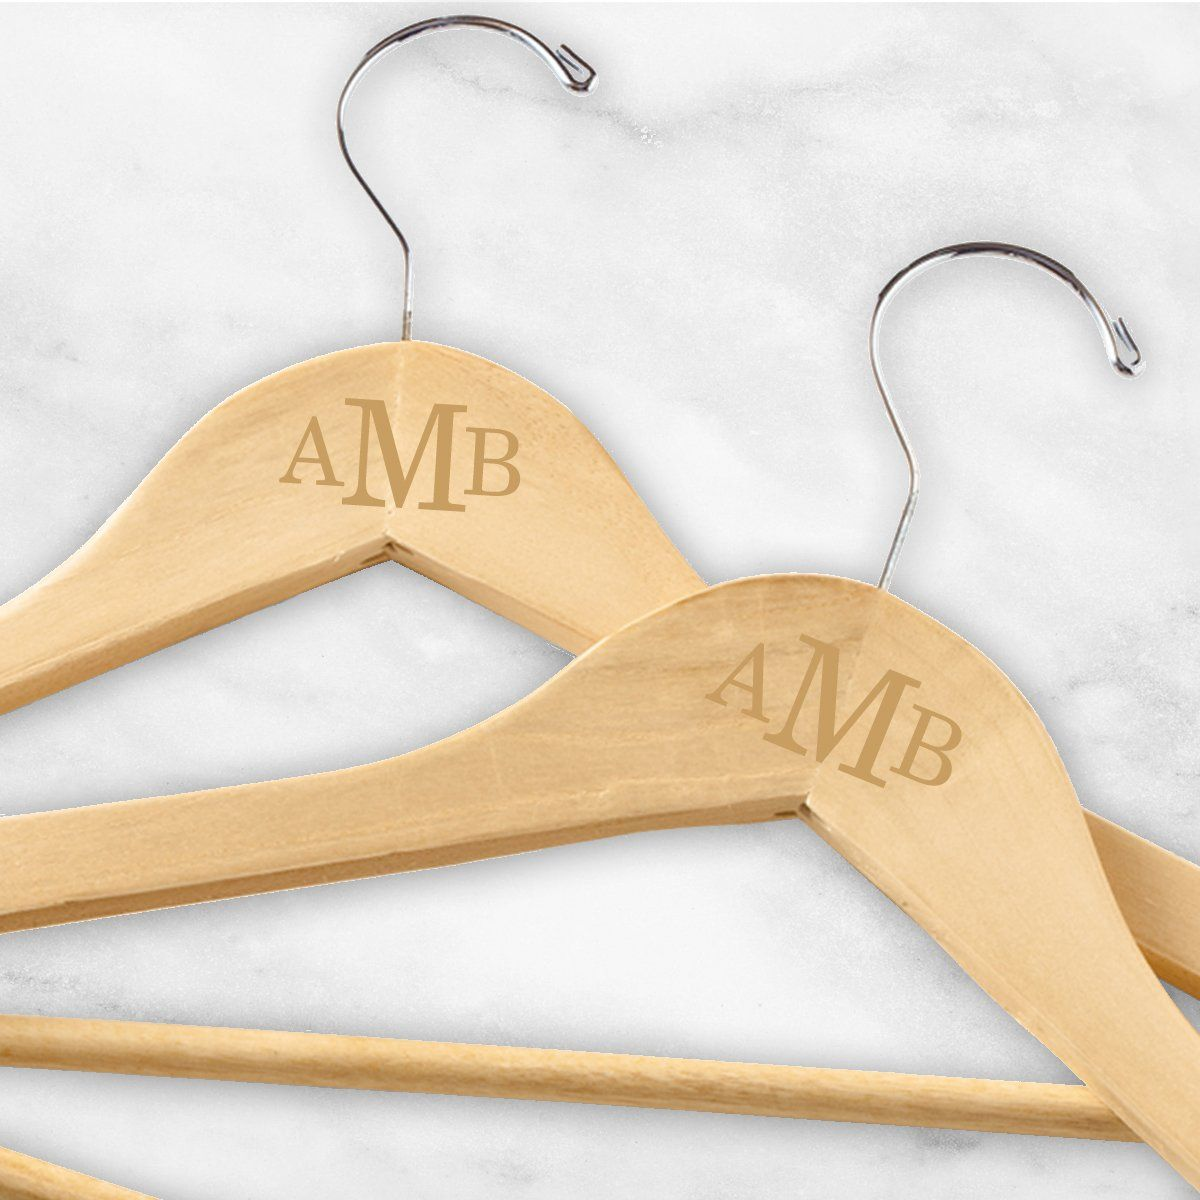 Personalized Monogrammed Wooden Hangers Set of 2